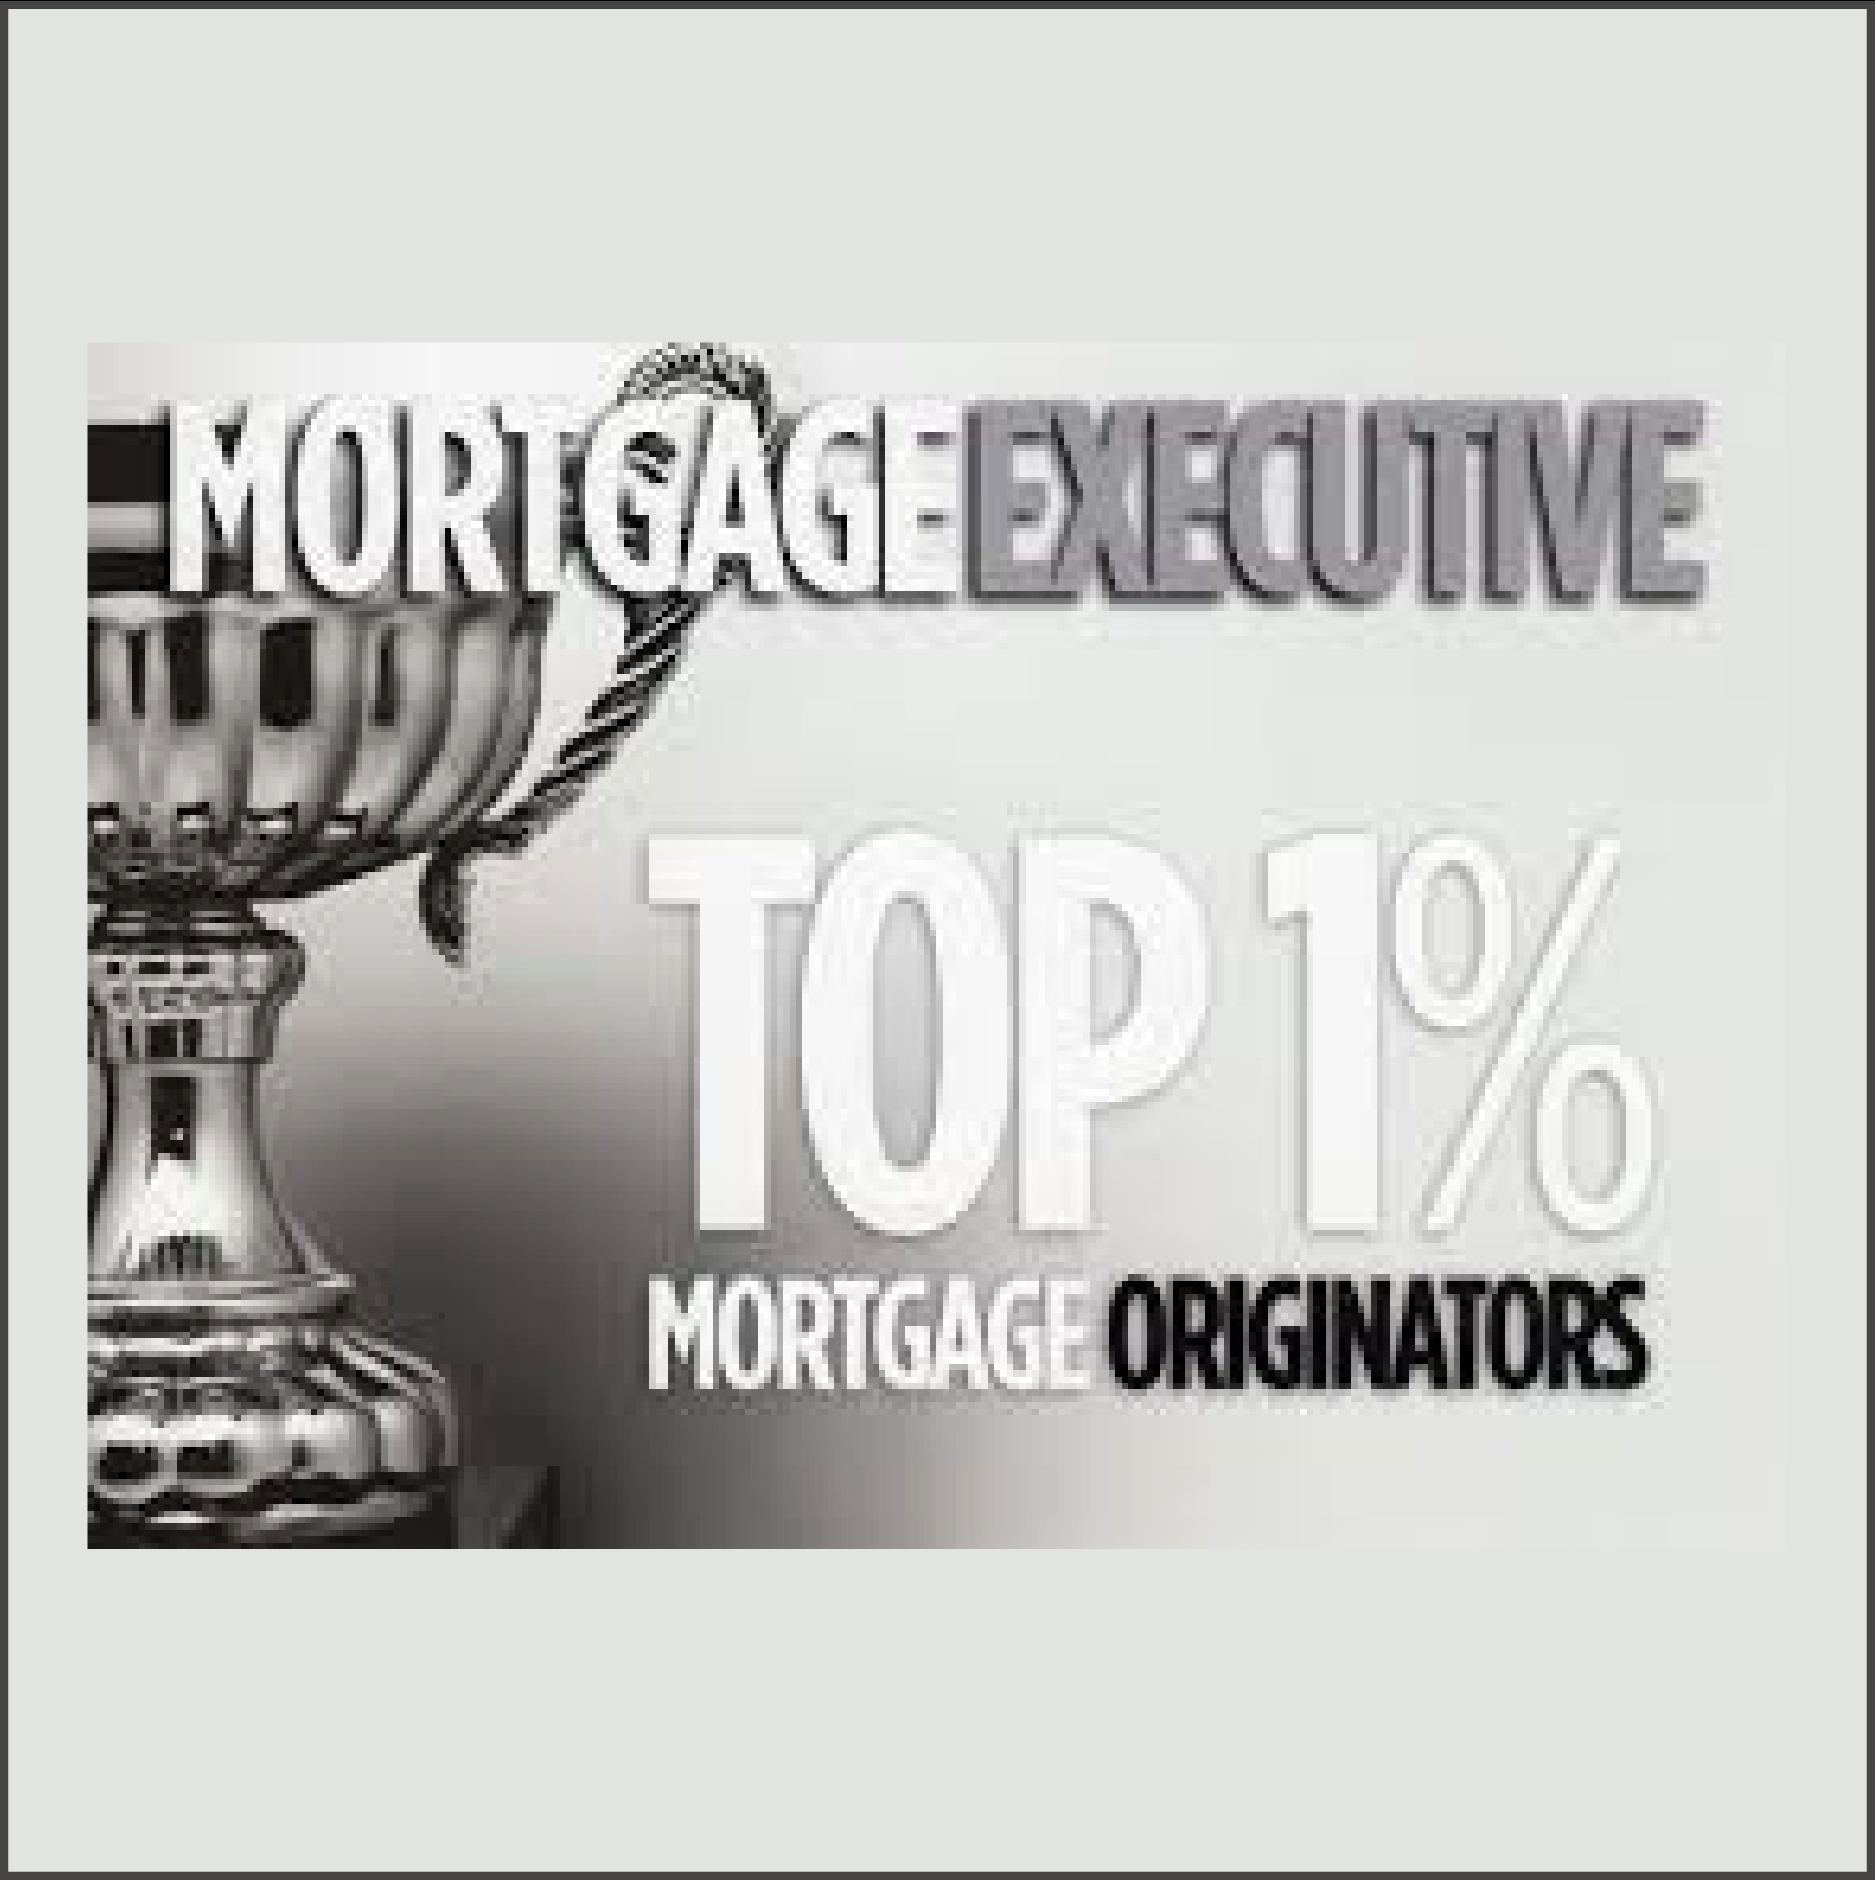 Award Winning mortgage lender LeaderOne